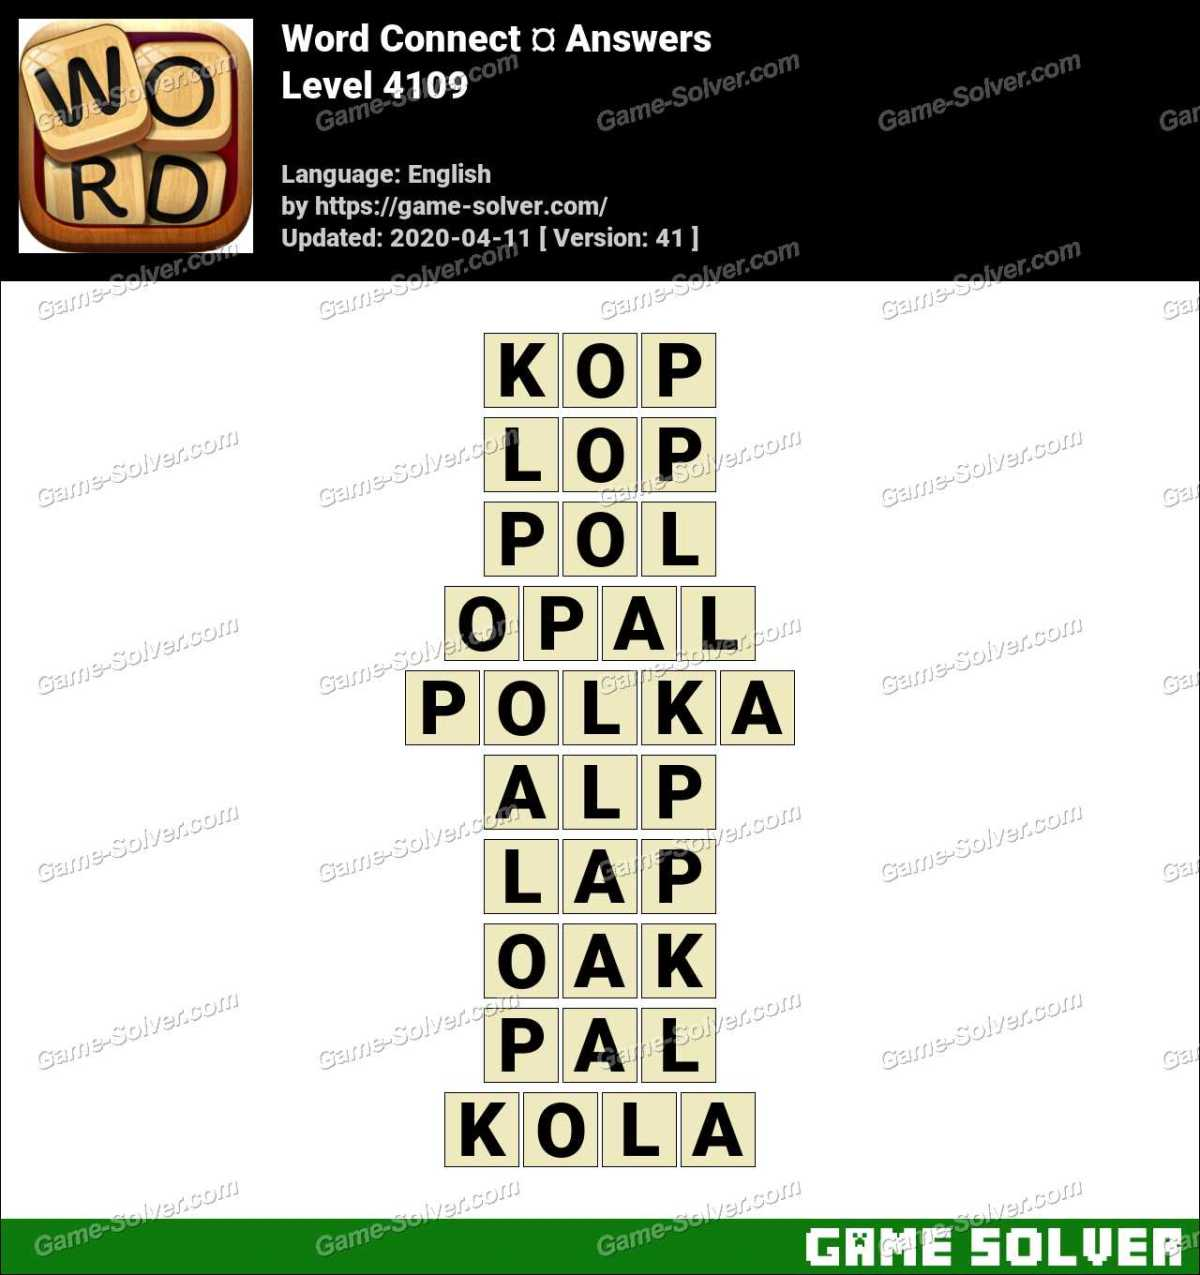 Word Connect Level 4109 Answers